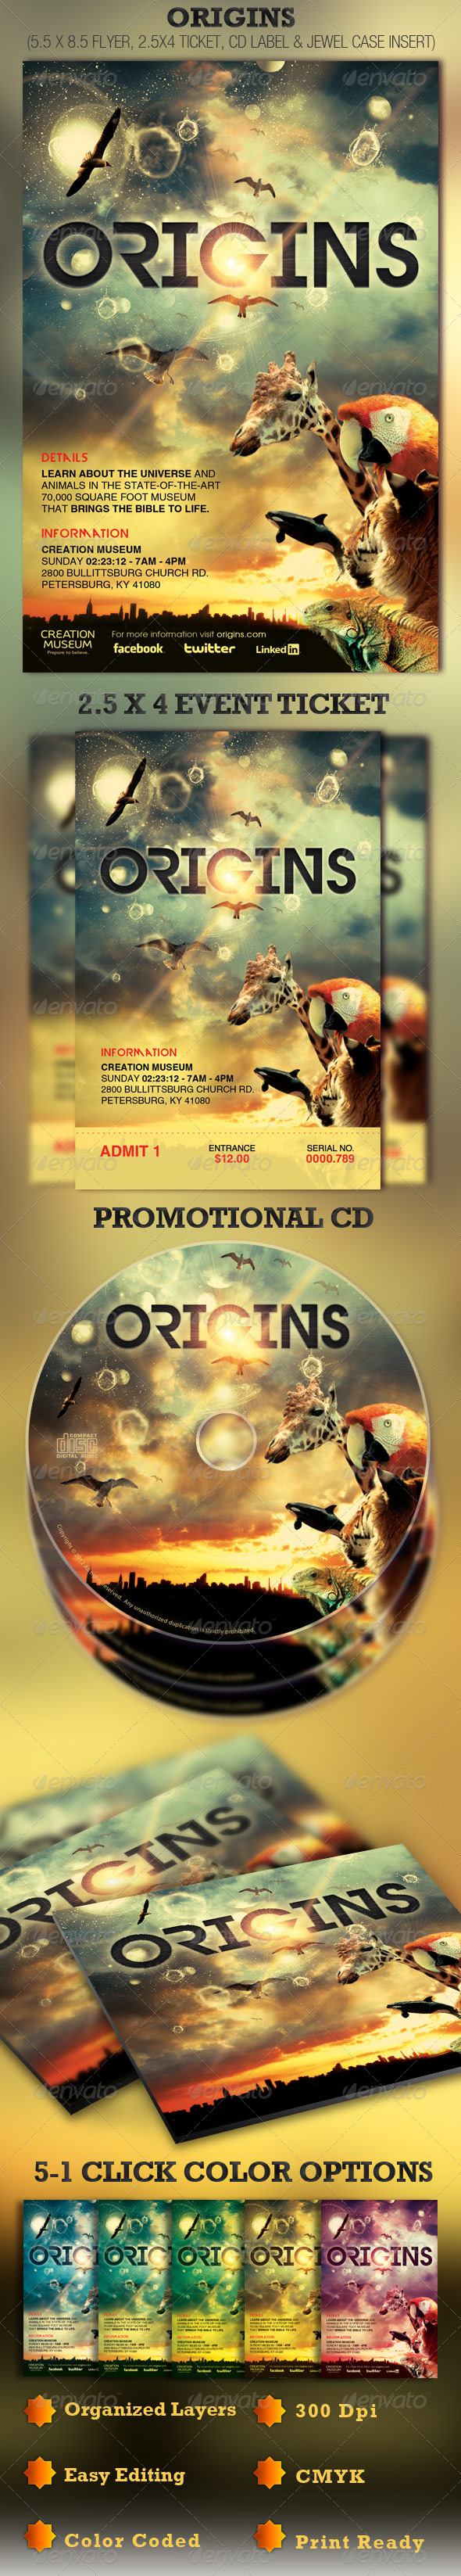 Origins Flyer, Ticket and CD Template - Church Flyers